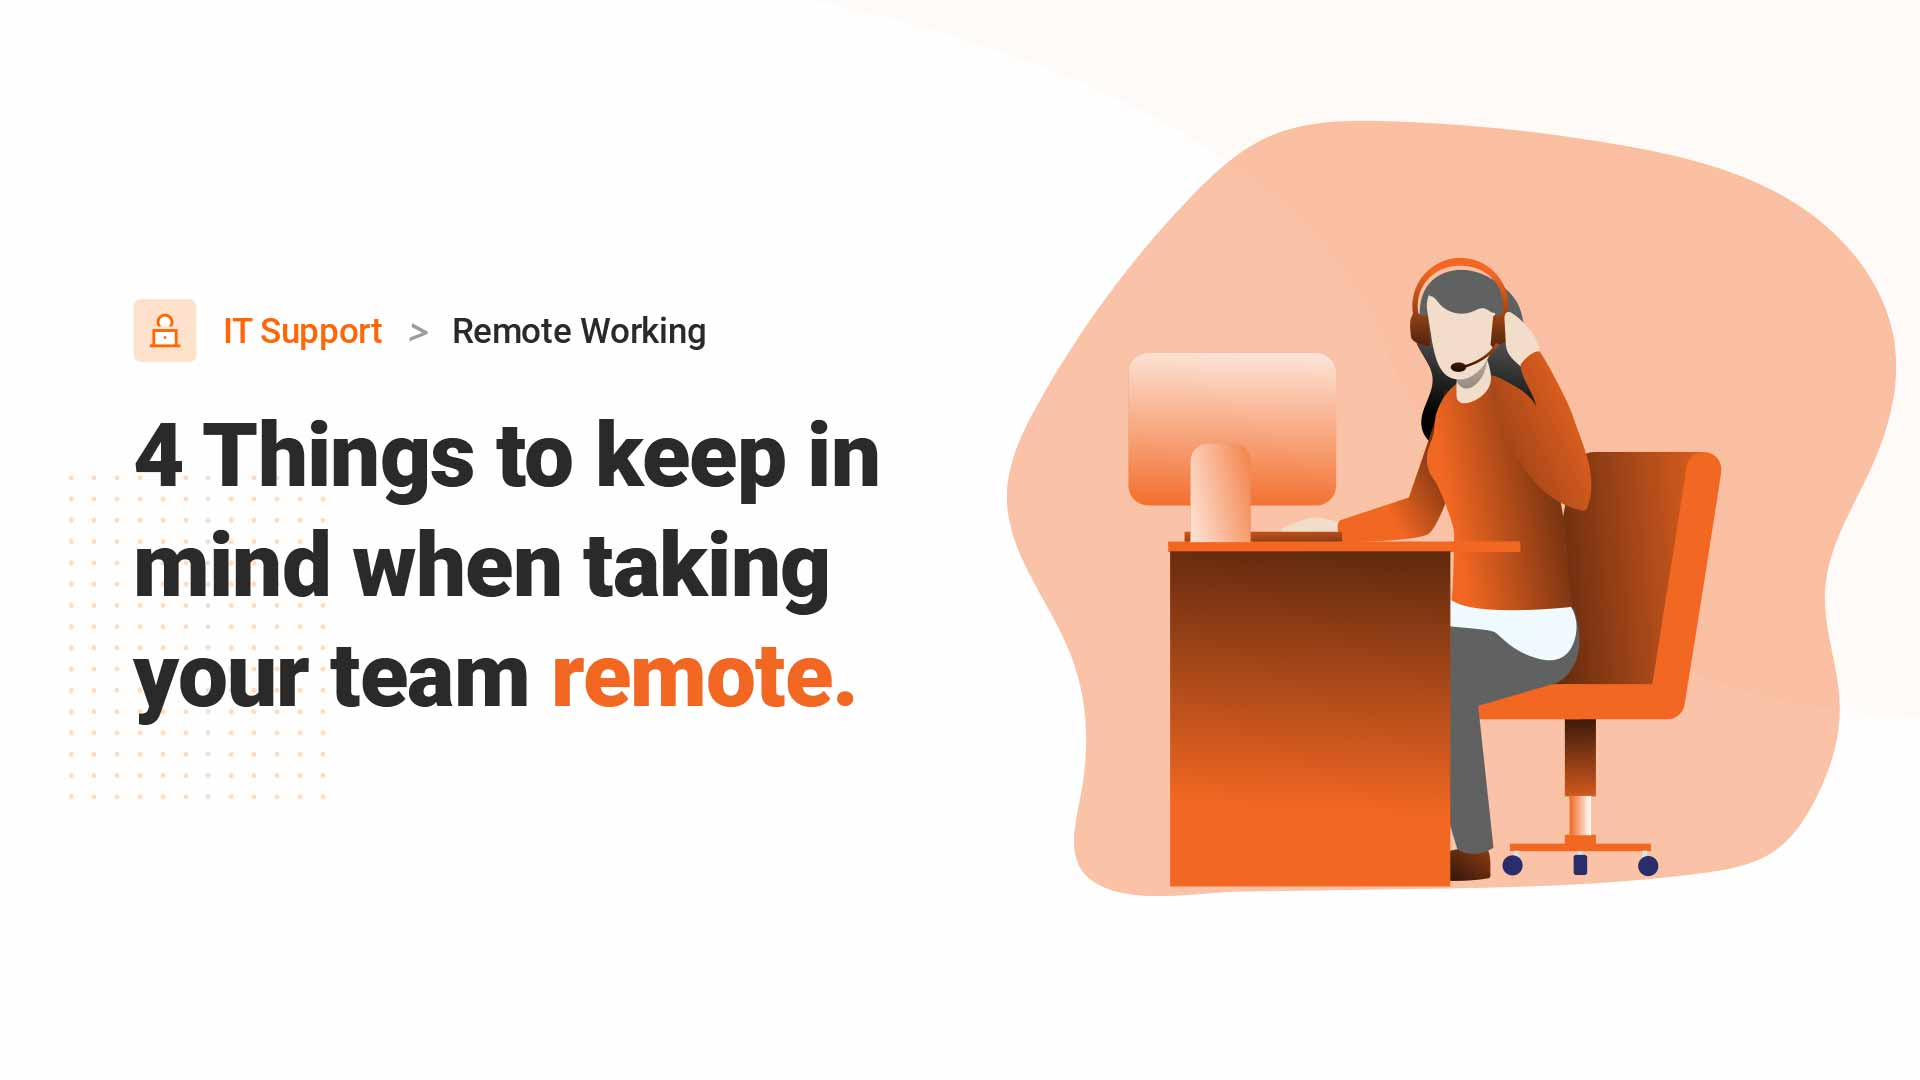 4 Things to keep in mind when taking your team remote.